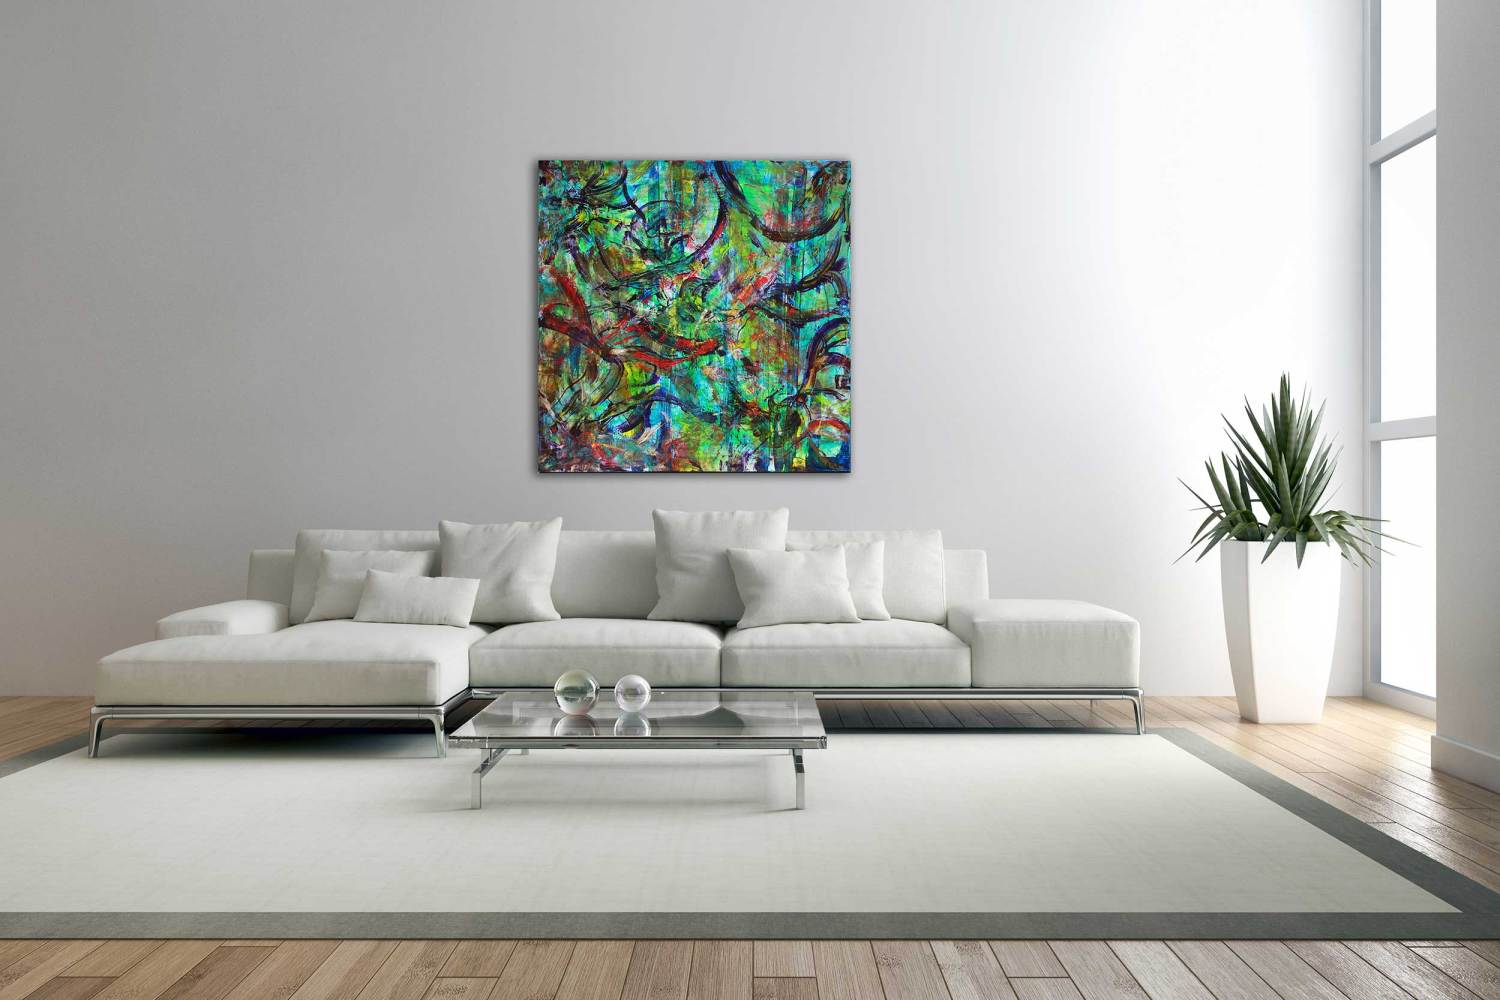 SOLD : Scattered Visions (Visiones dispersas) - LARGE BOLD SQUARE WORK! (2014) Mixed Media painting by Nestor Toro : LA abstract artist